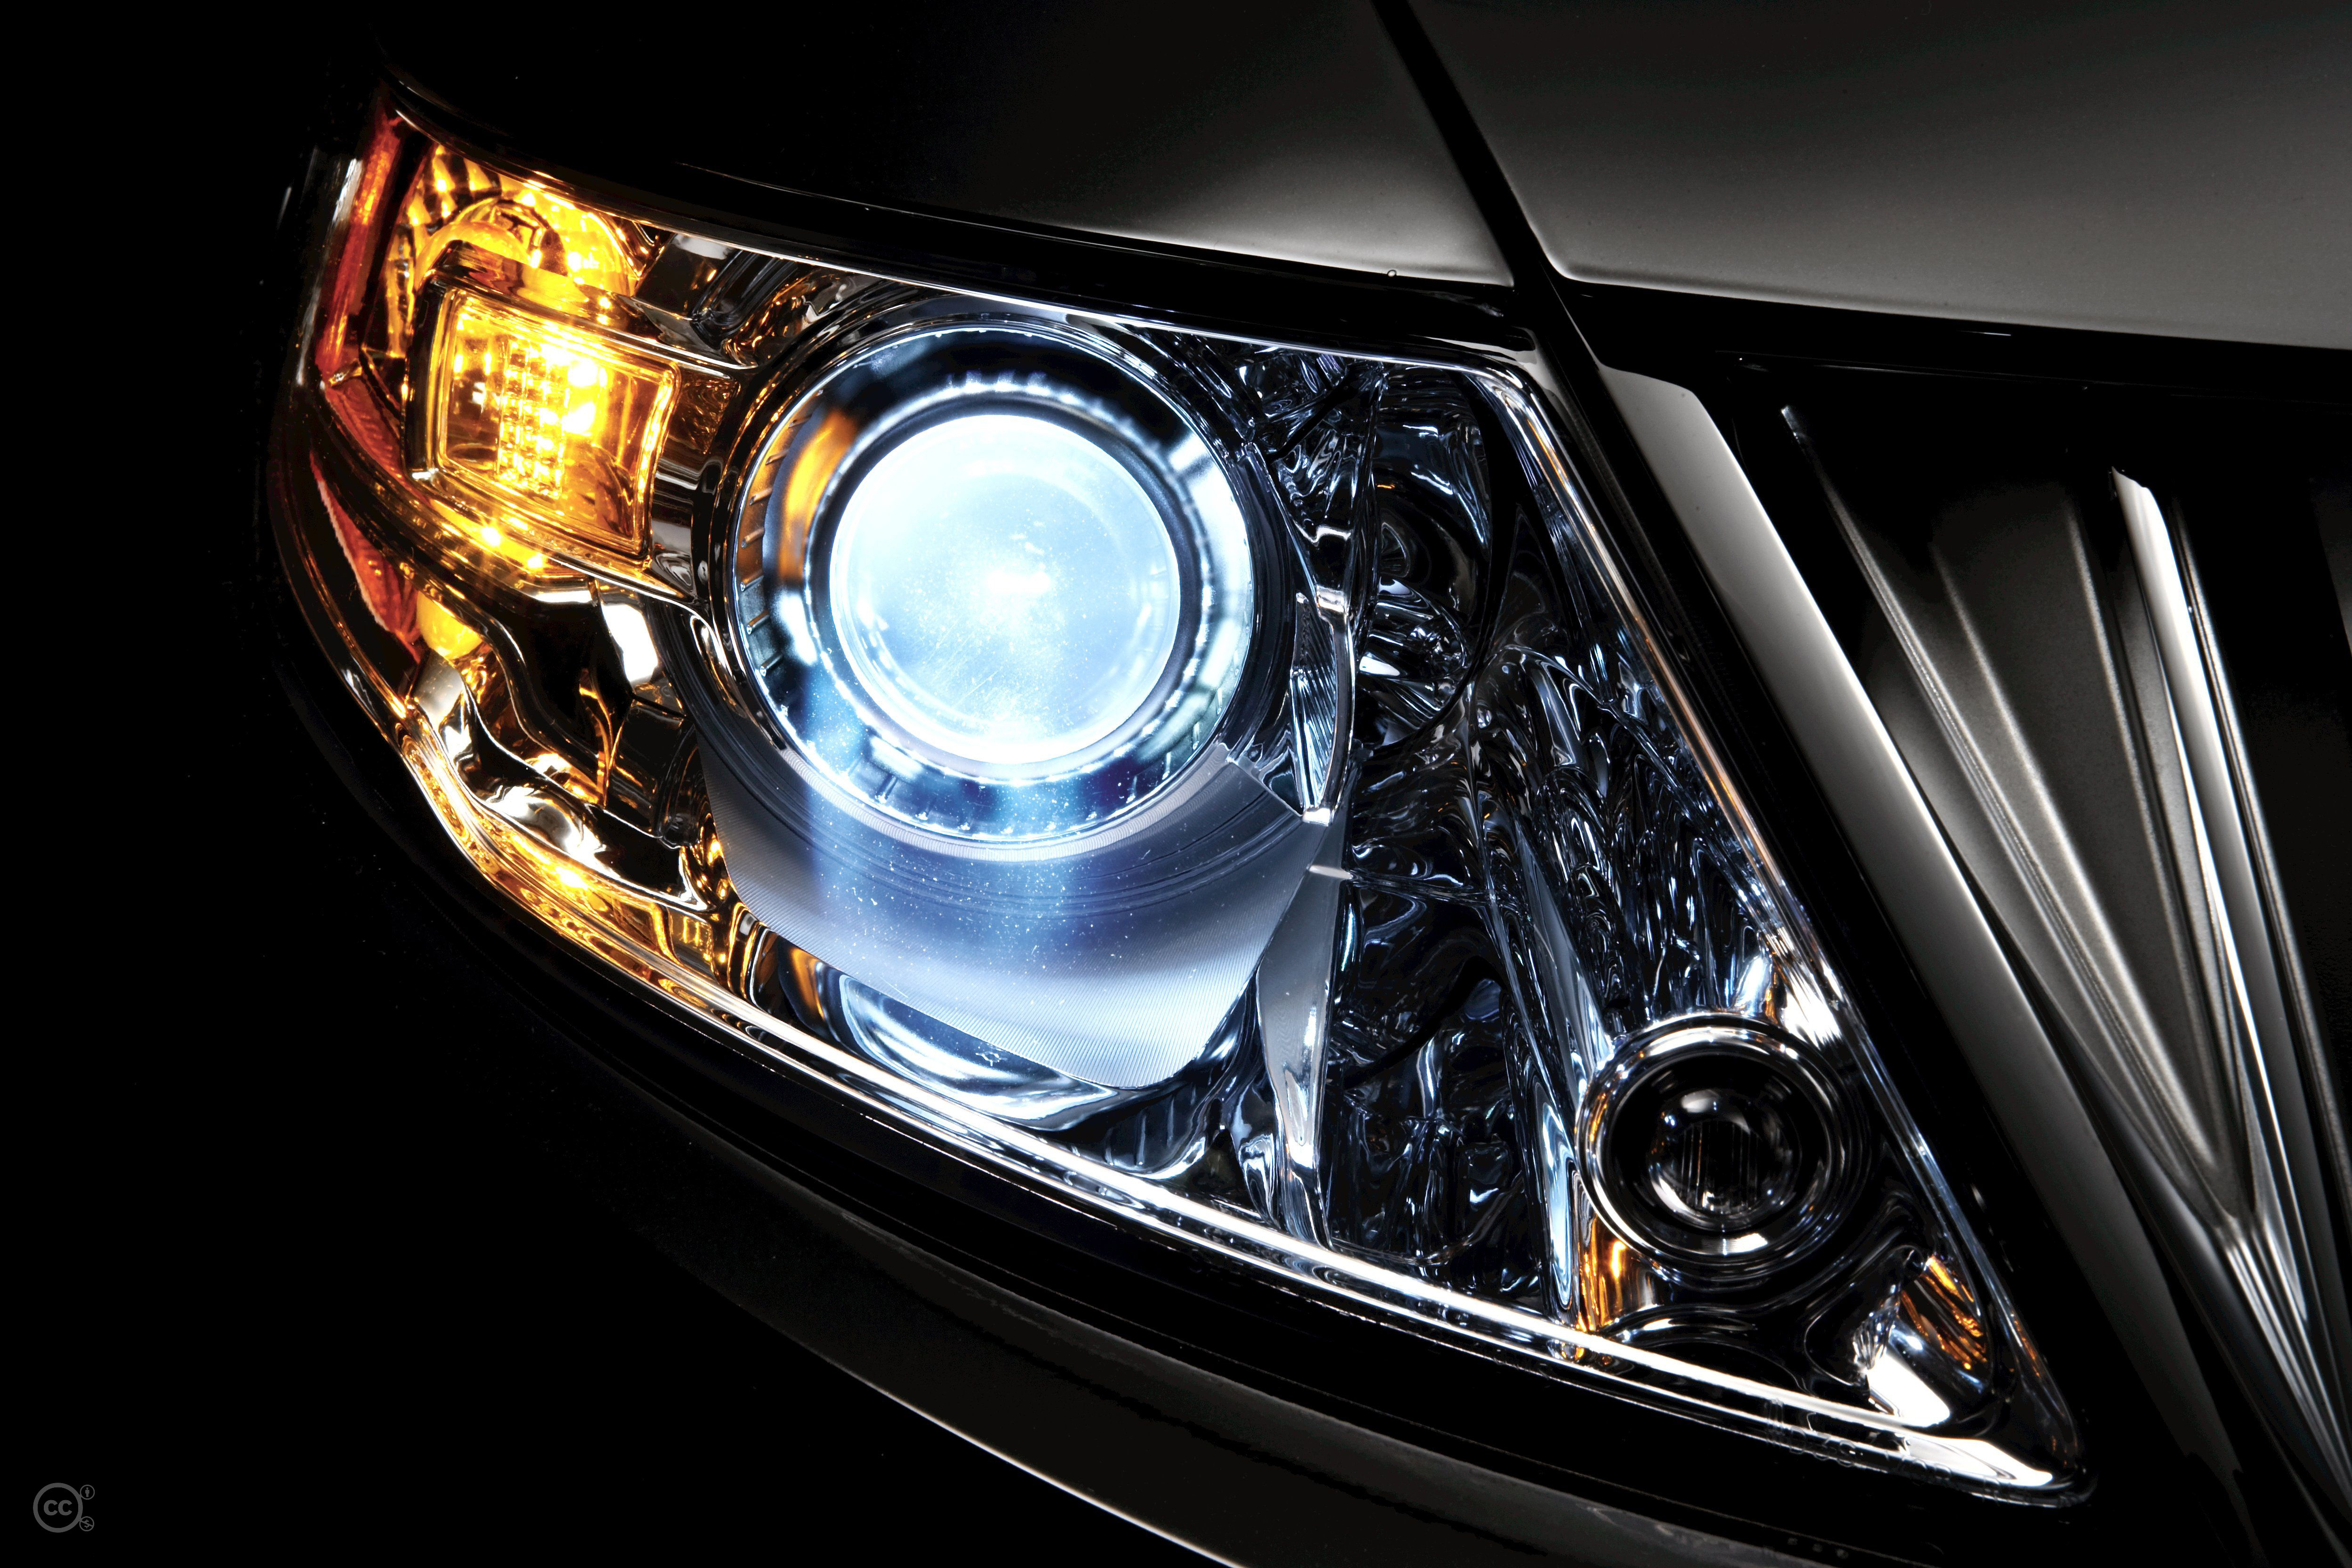 with reviews to kits hid lights heres todays buy best lighting research org xenon headlight coreresearchcore